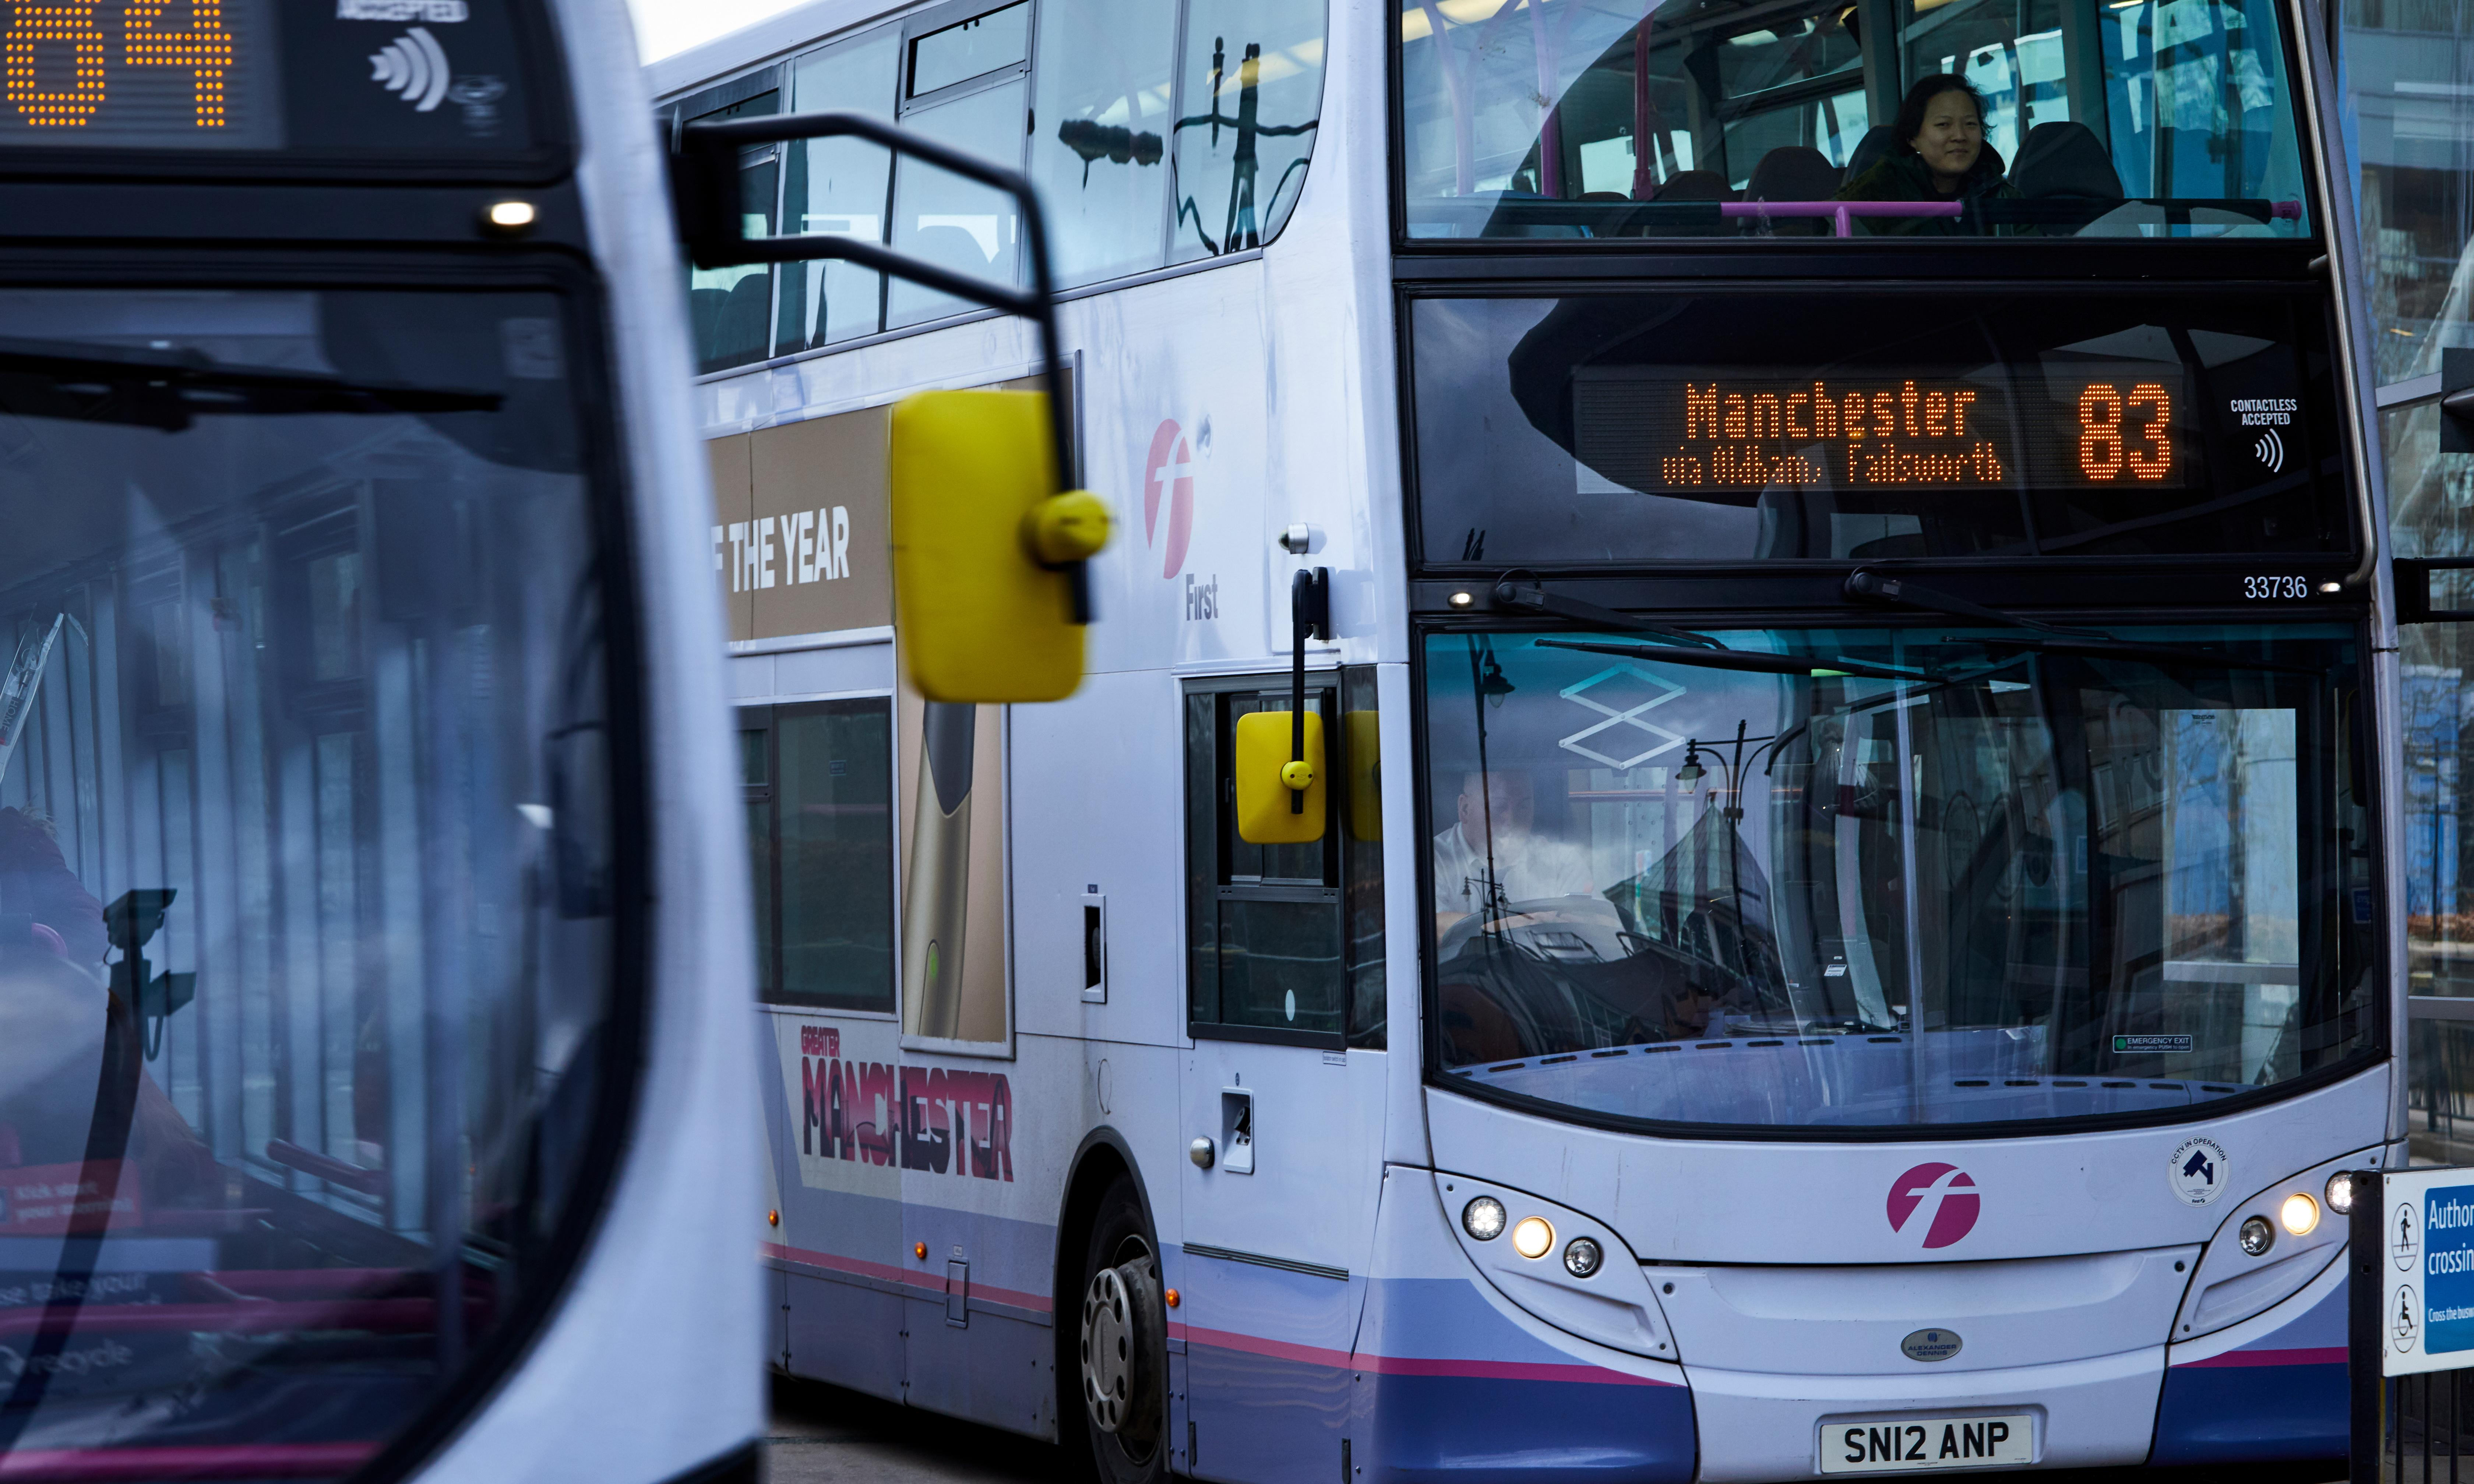 Andy Burnham calls for bus fare subsidies in north to match London